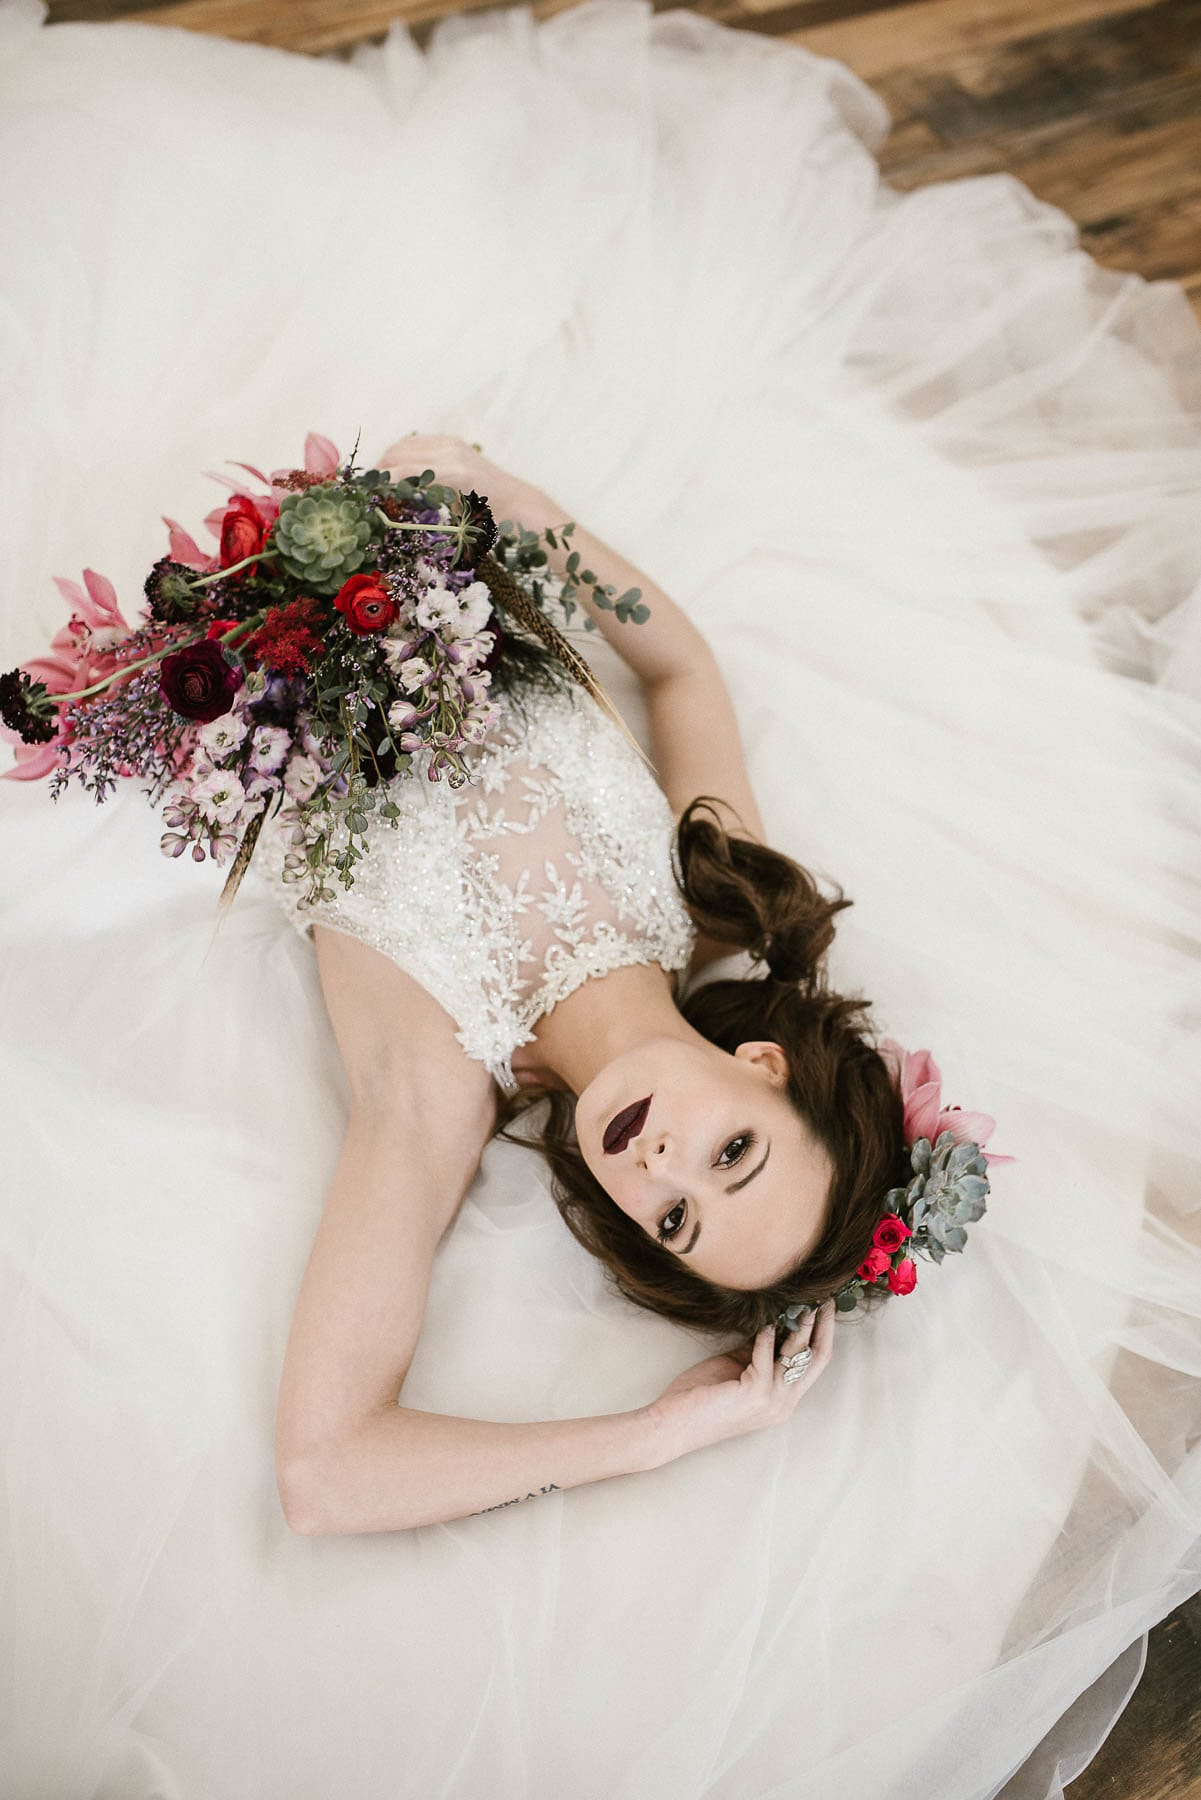 Princess Wedding Dress in Moody Styled Shoot With Jewel-toned Florals